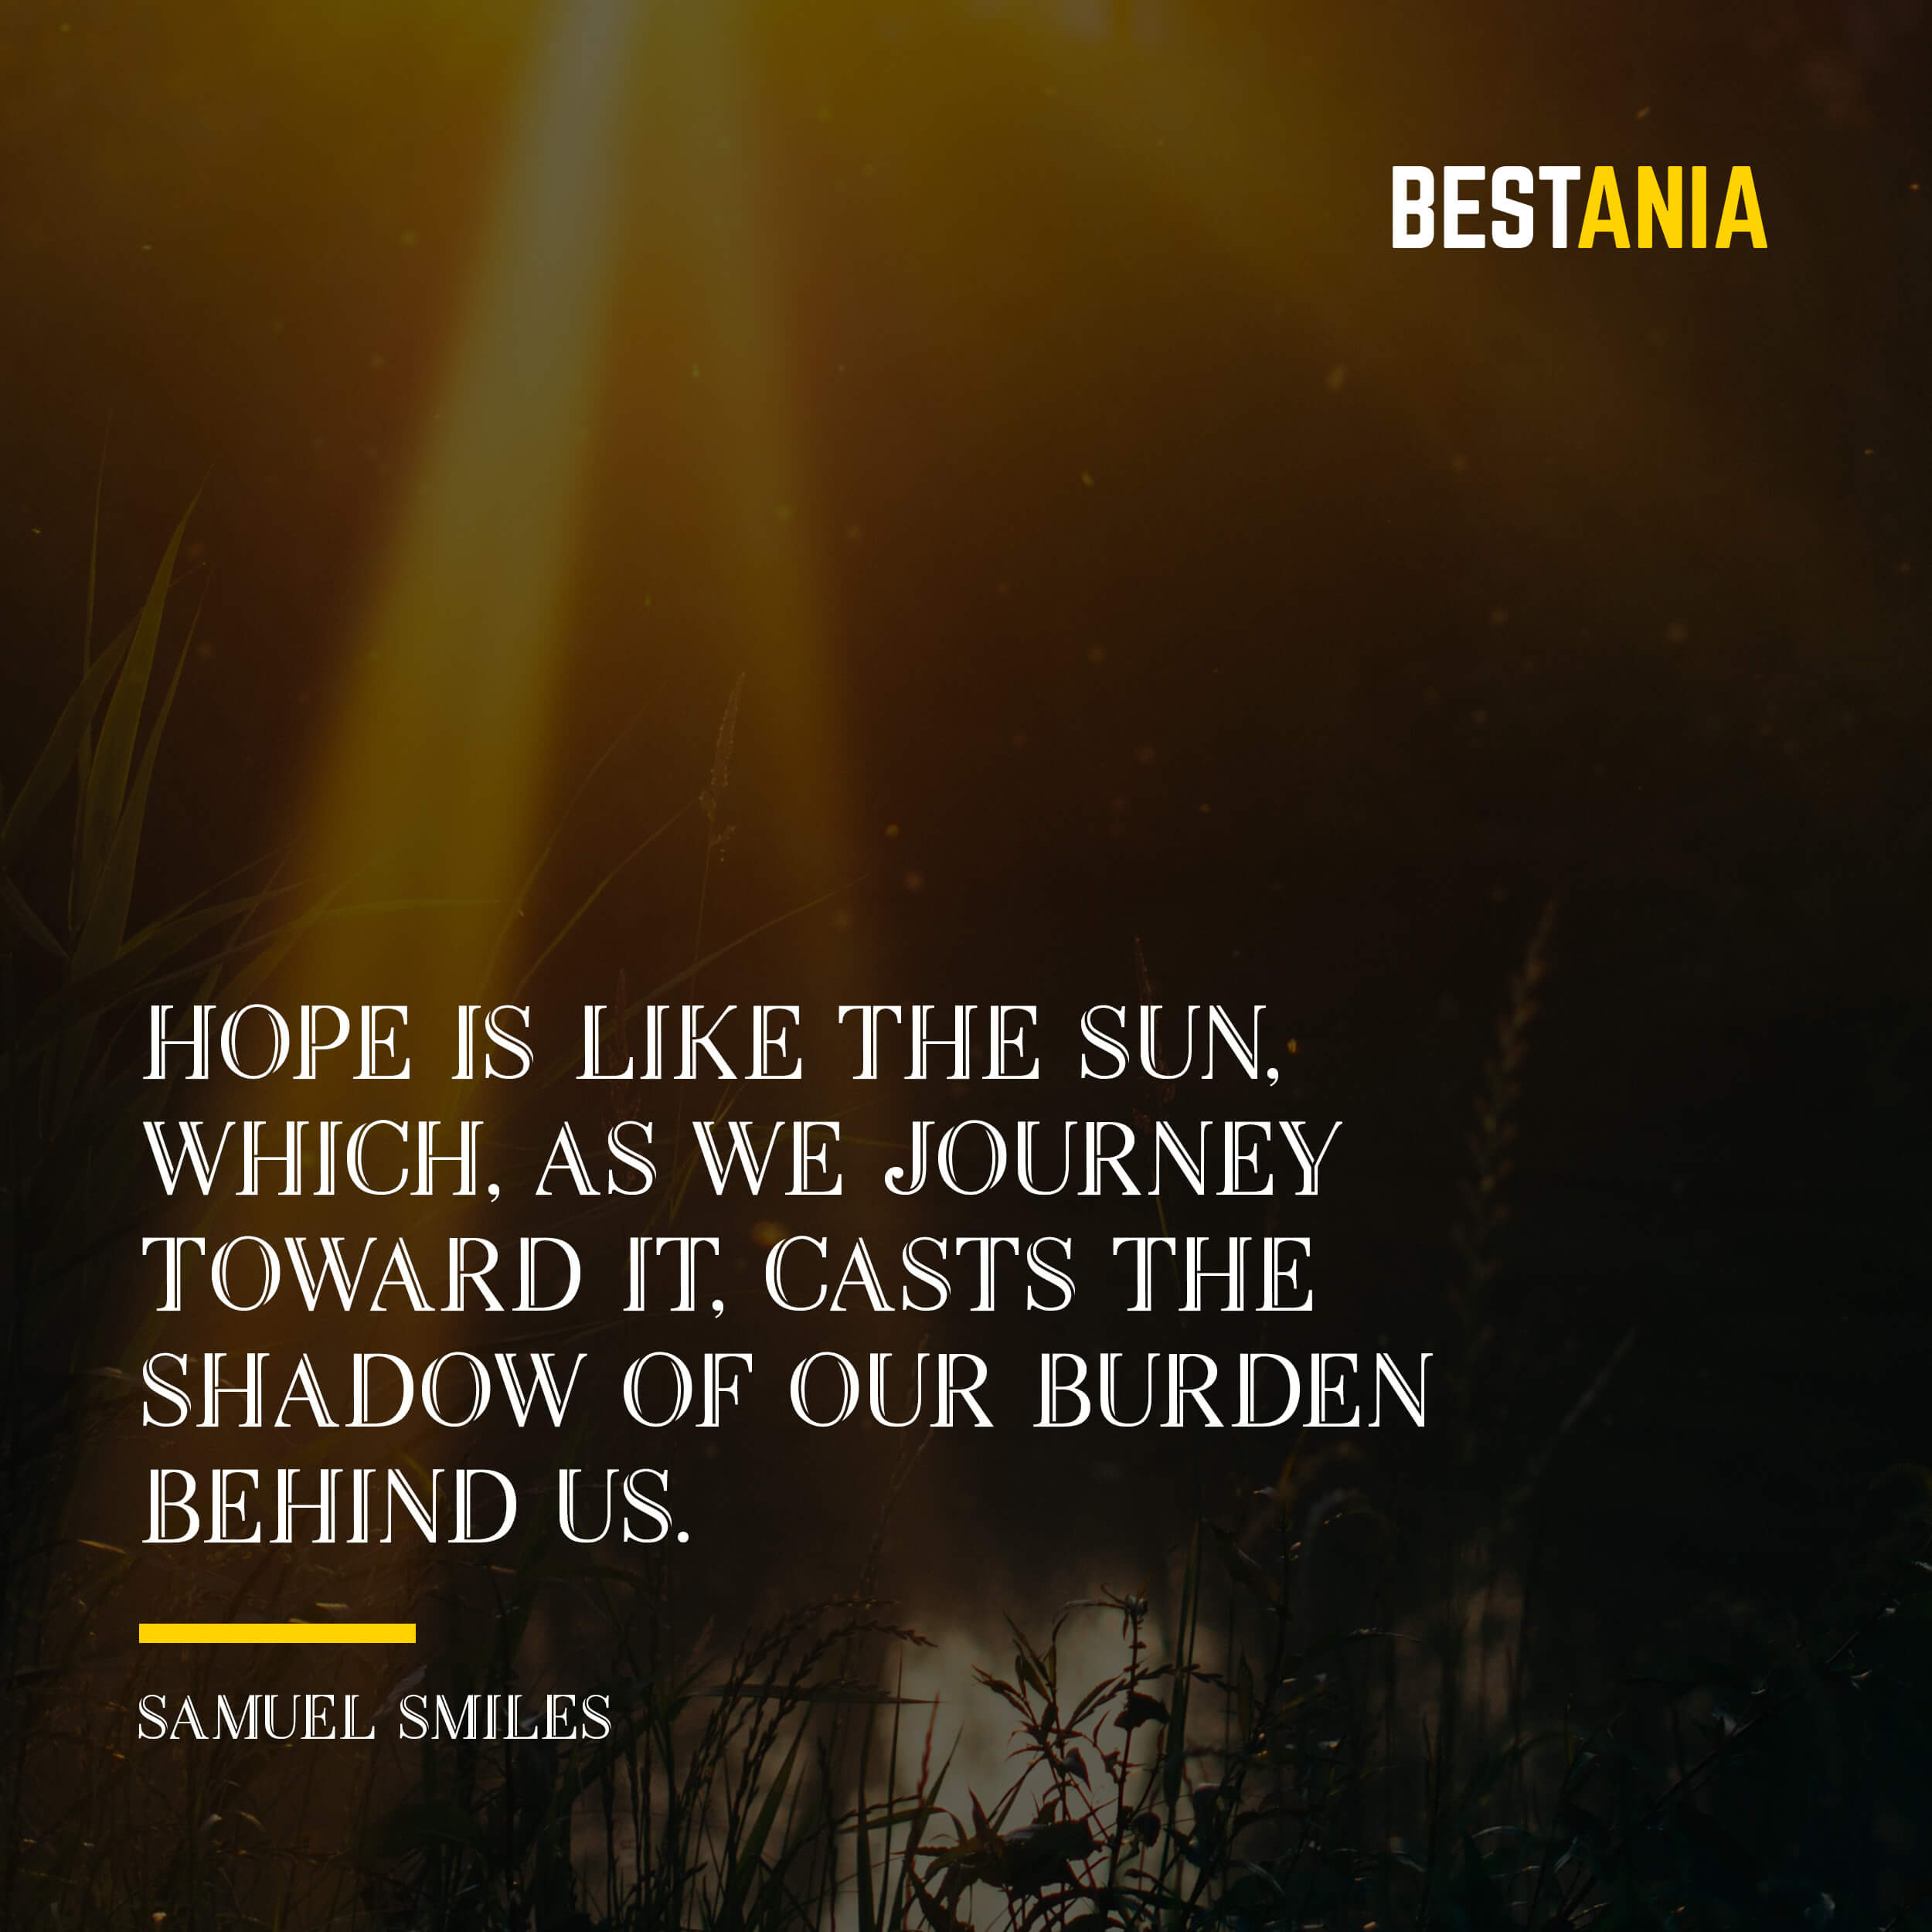 """""""HOPE IS LIKE THE SUN, WHICH, AS WE JOURNEY TOWARD IT, CASTS THE SHADOW OF OUR BURDEN BEHIND US."""" SAMUEL SMILES"""